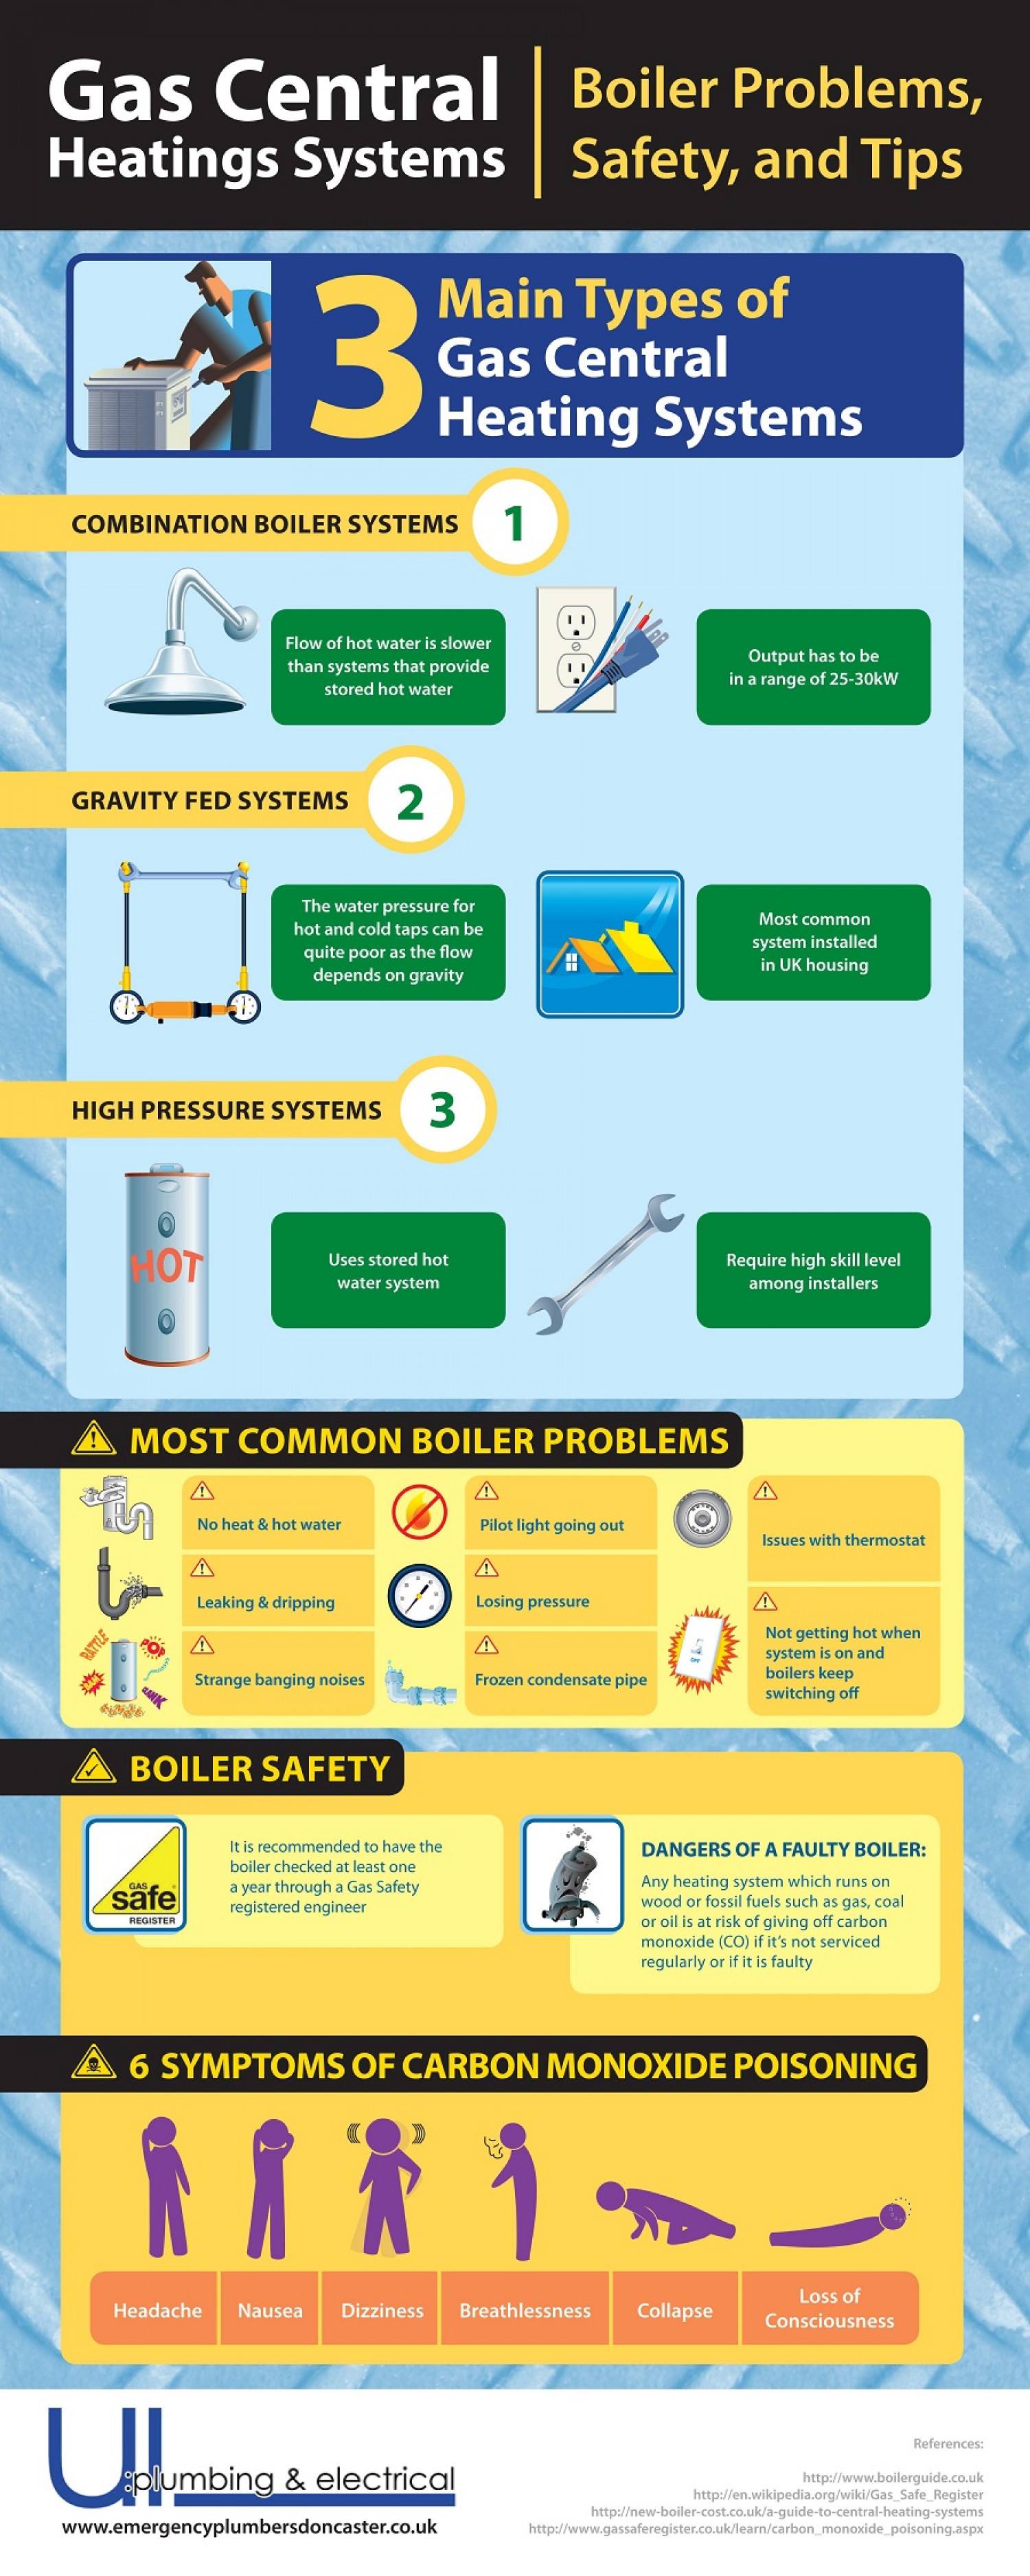 Gas Central Heating Systems: Boiler Problems, Safety, and Tips Infographic